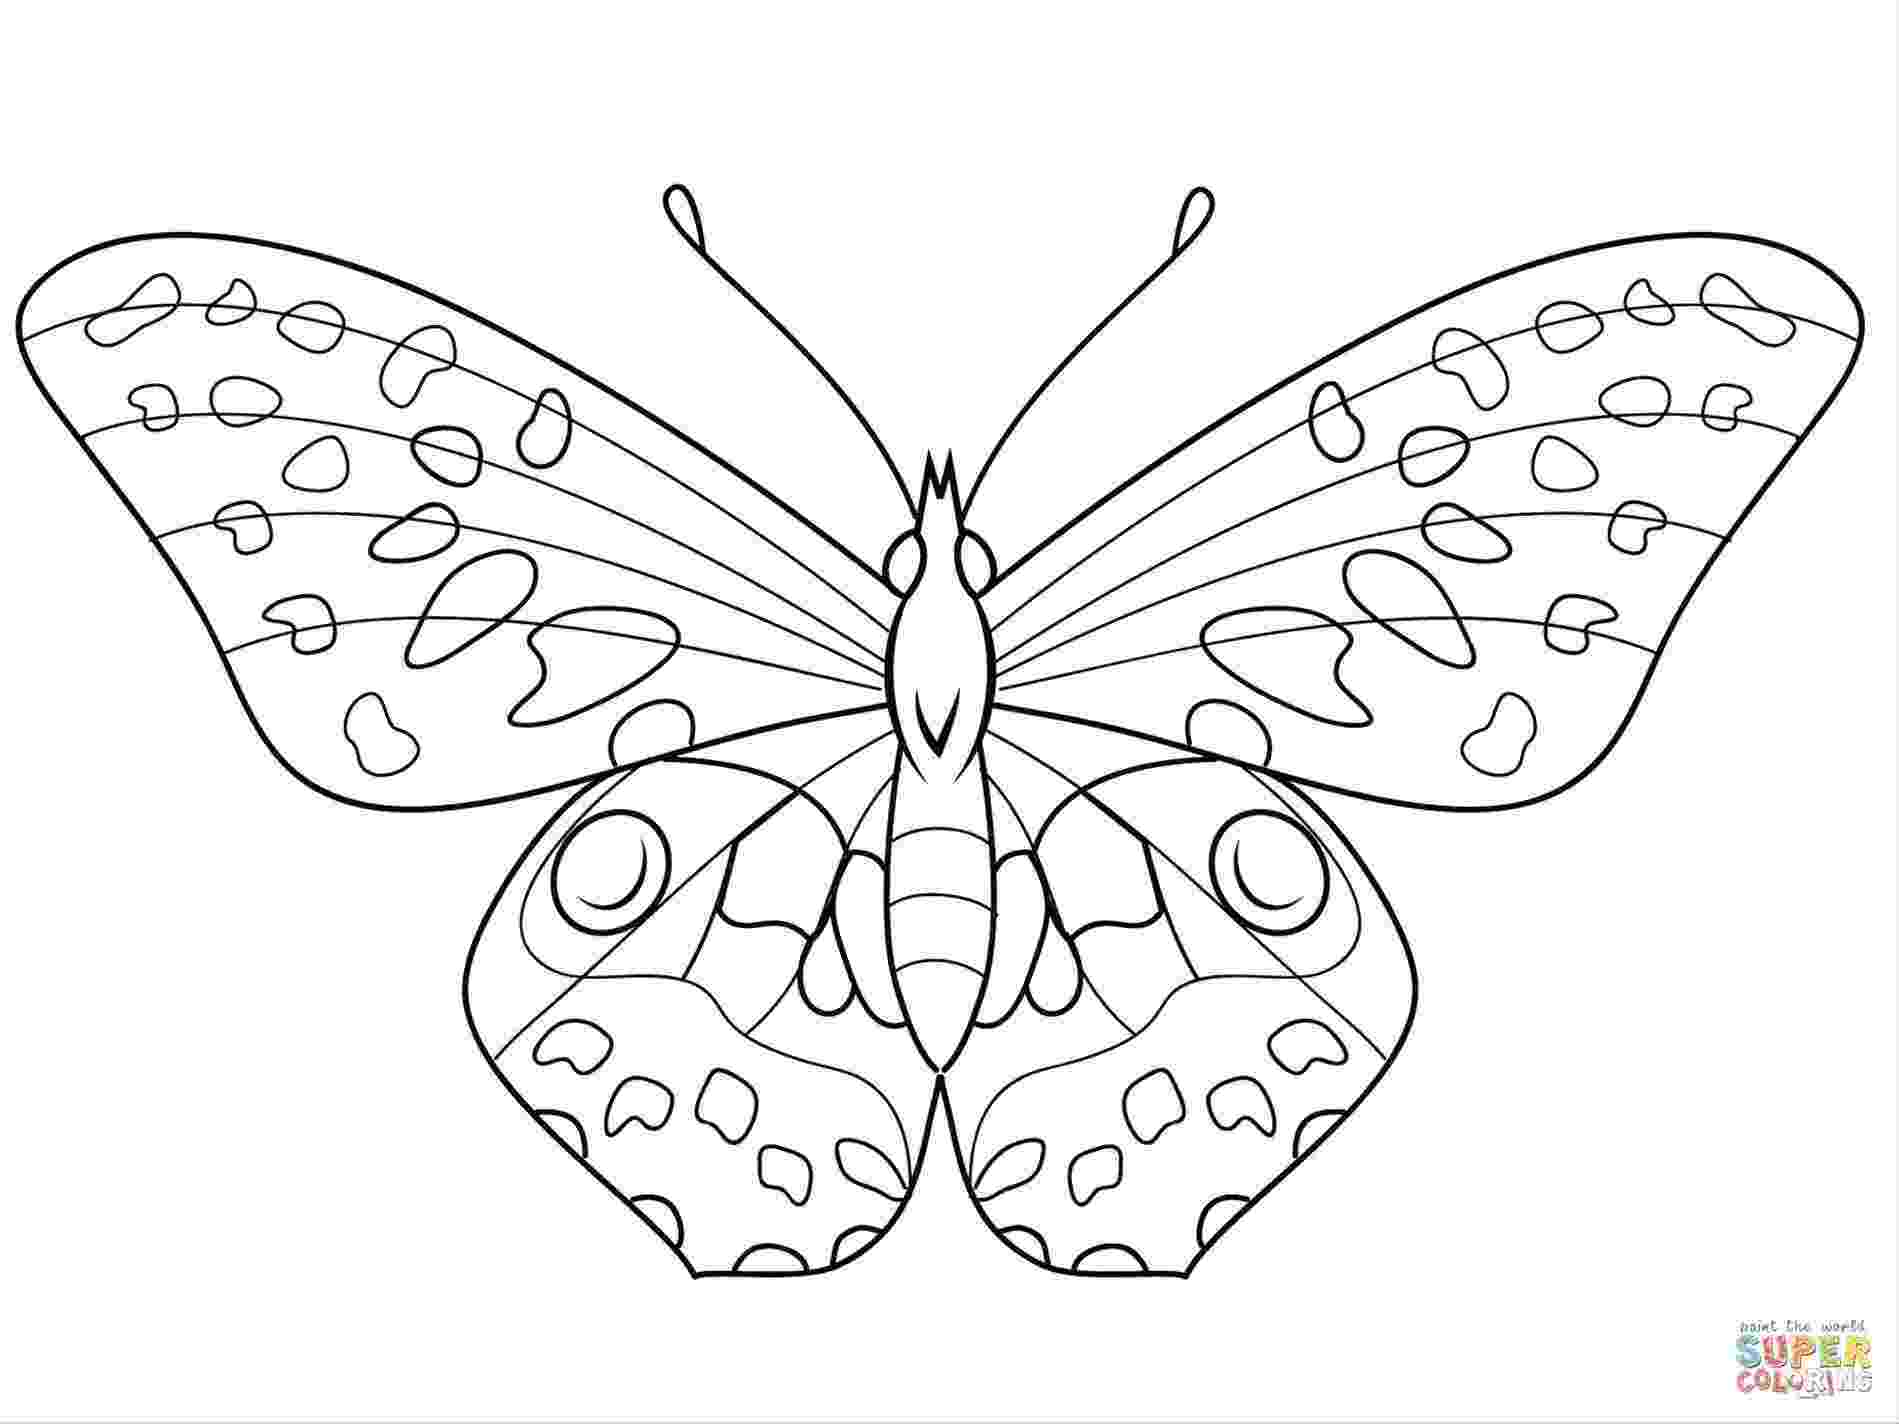 monarch butterfly life cycle coloring page butterfly life cycle drawing at getdrawings free download butterfly monarch page coloring life cycle